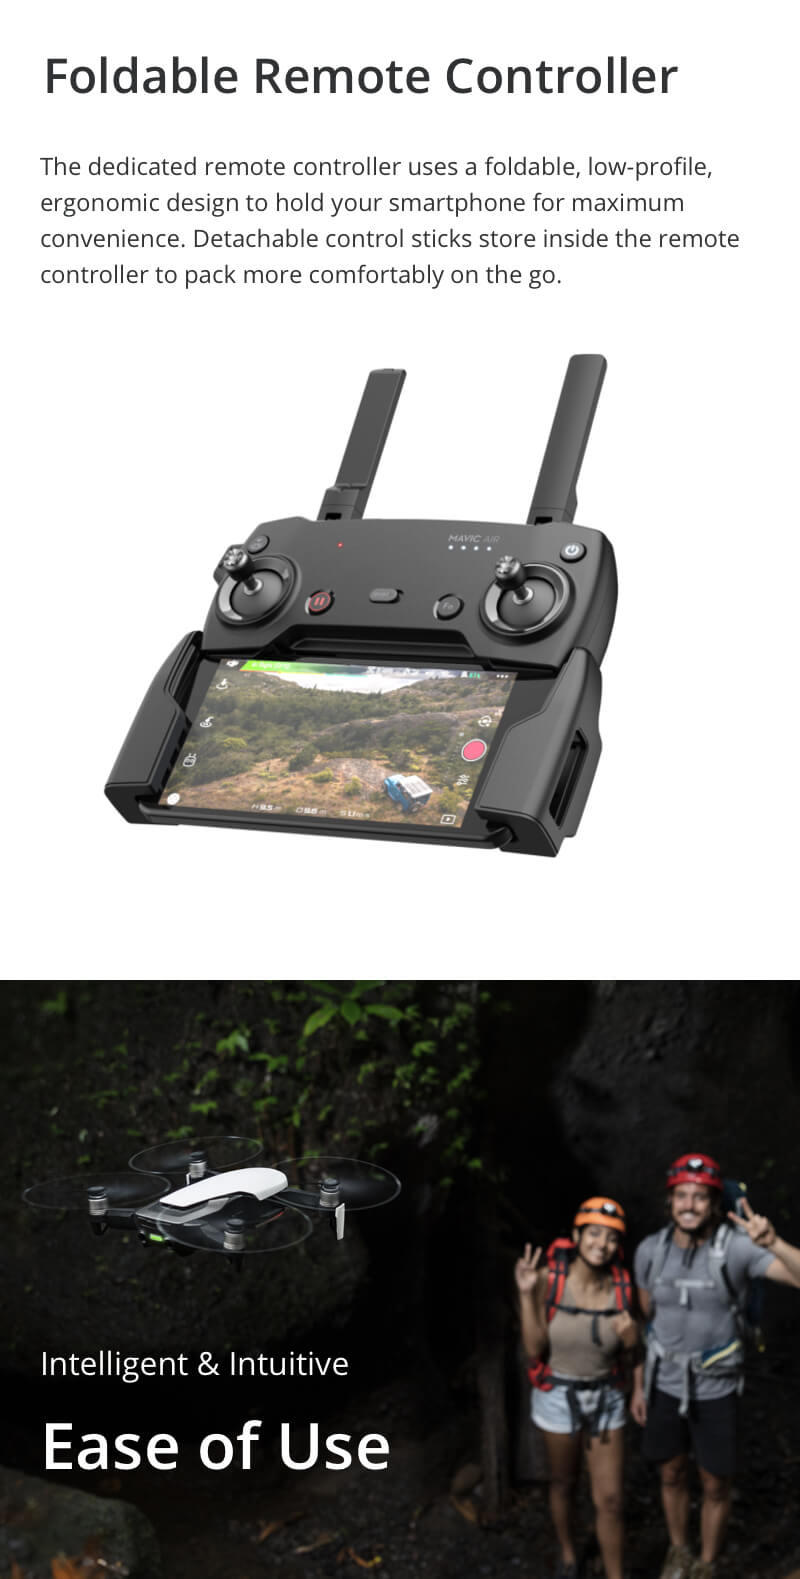 DJI Mavic Air foldable remote controller